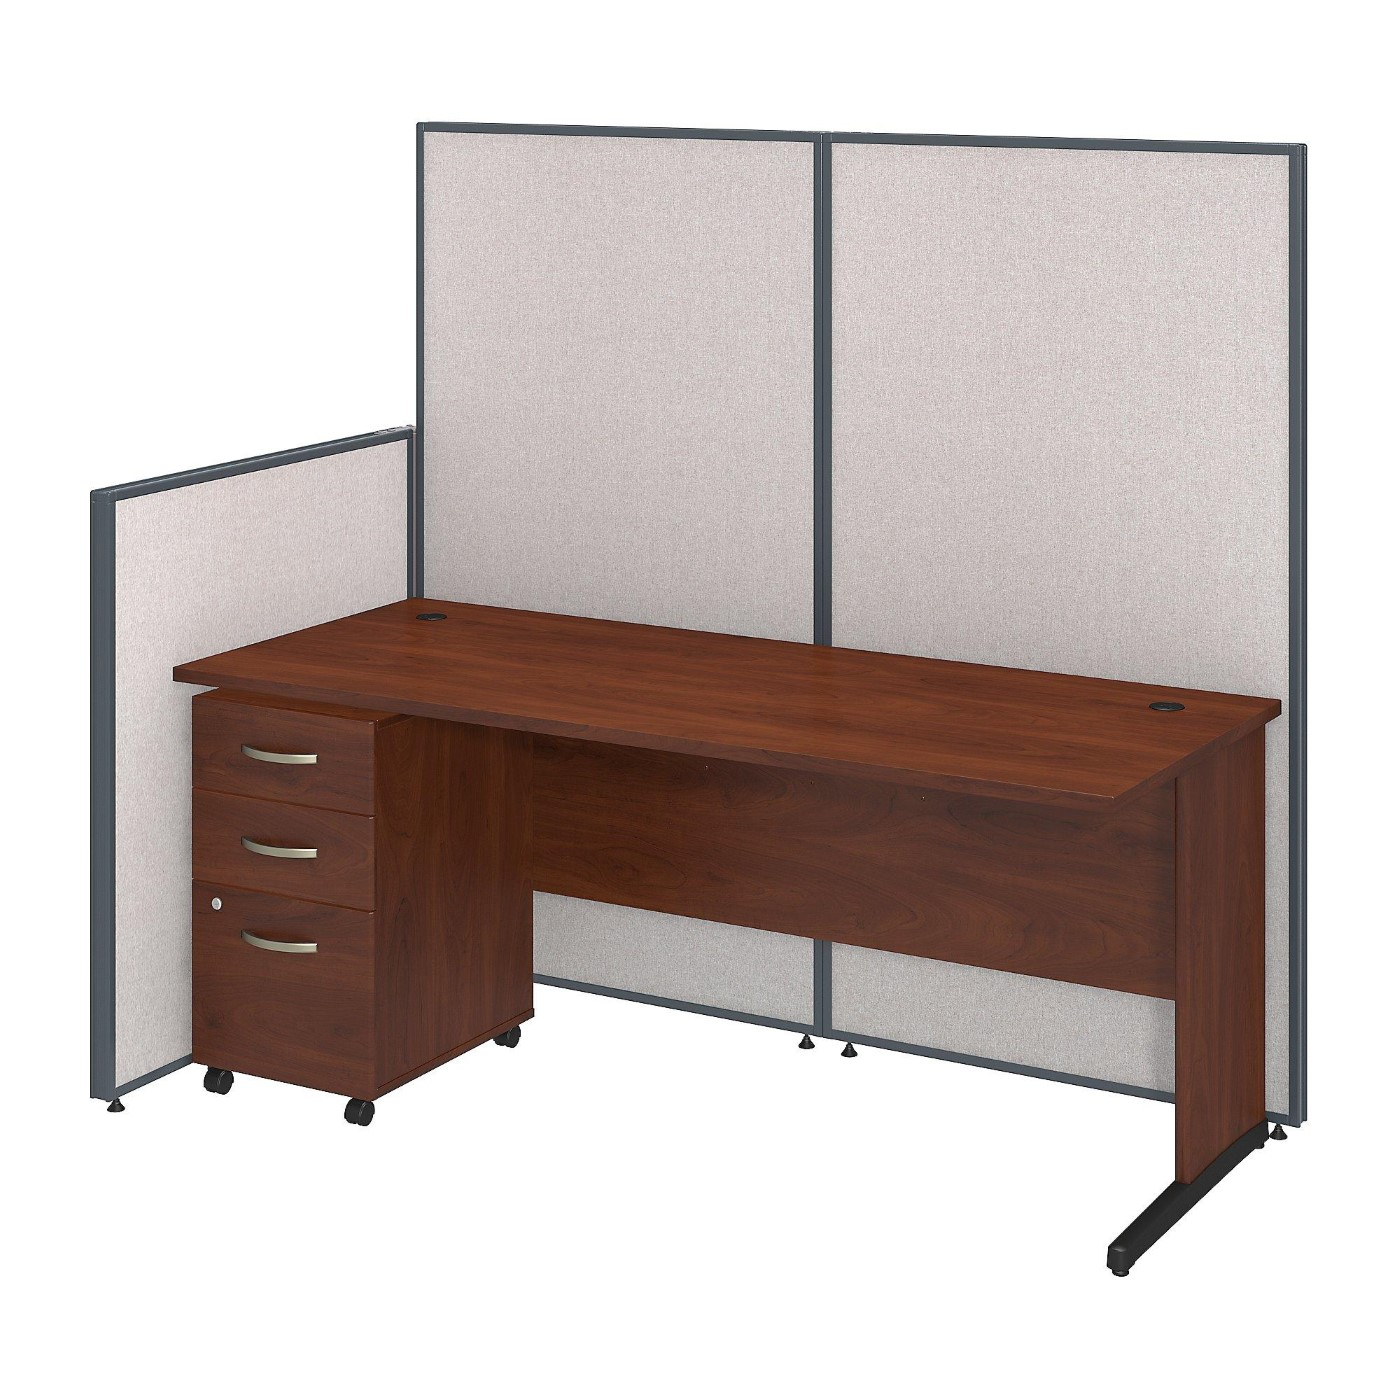 <font color=#c60><b>BUSH BUSINESS FURNITURE 72W C LEG DESK AND 3 DRAWER MOBILE PEDESTAL WITH PROPANELS. FREE SHIPPING</font></b>